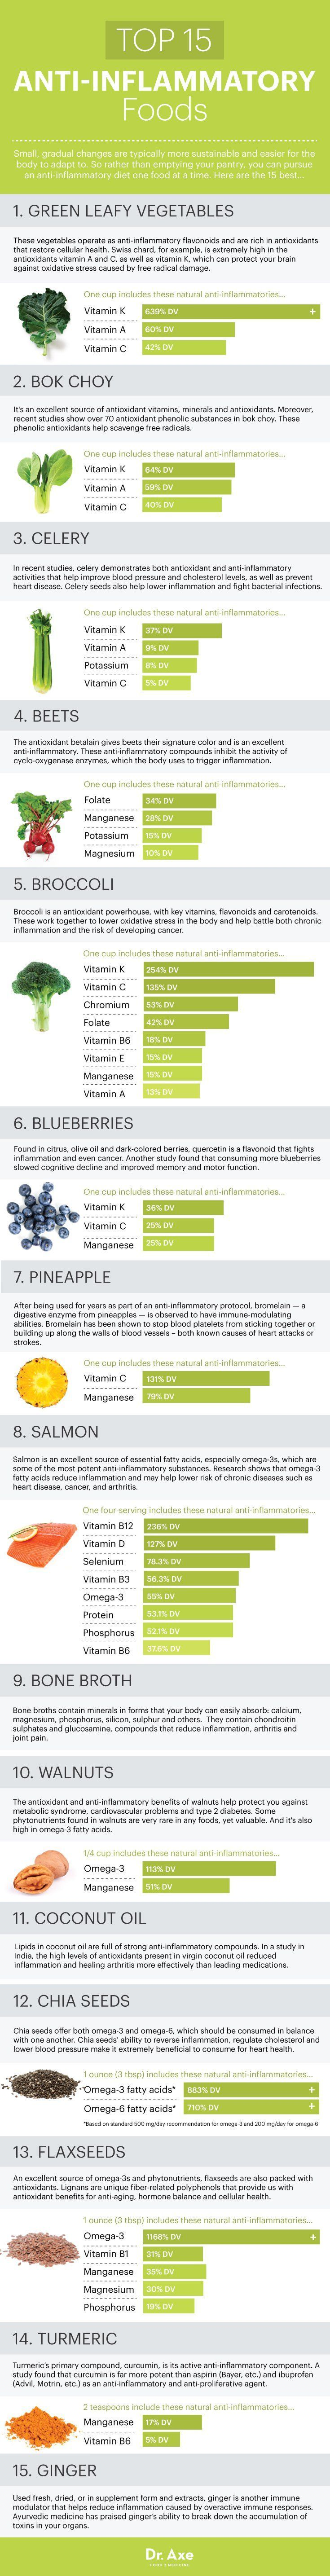 Top 15 Anti-Inflammatory Foods - Dr. Axe